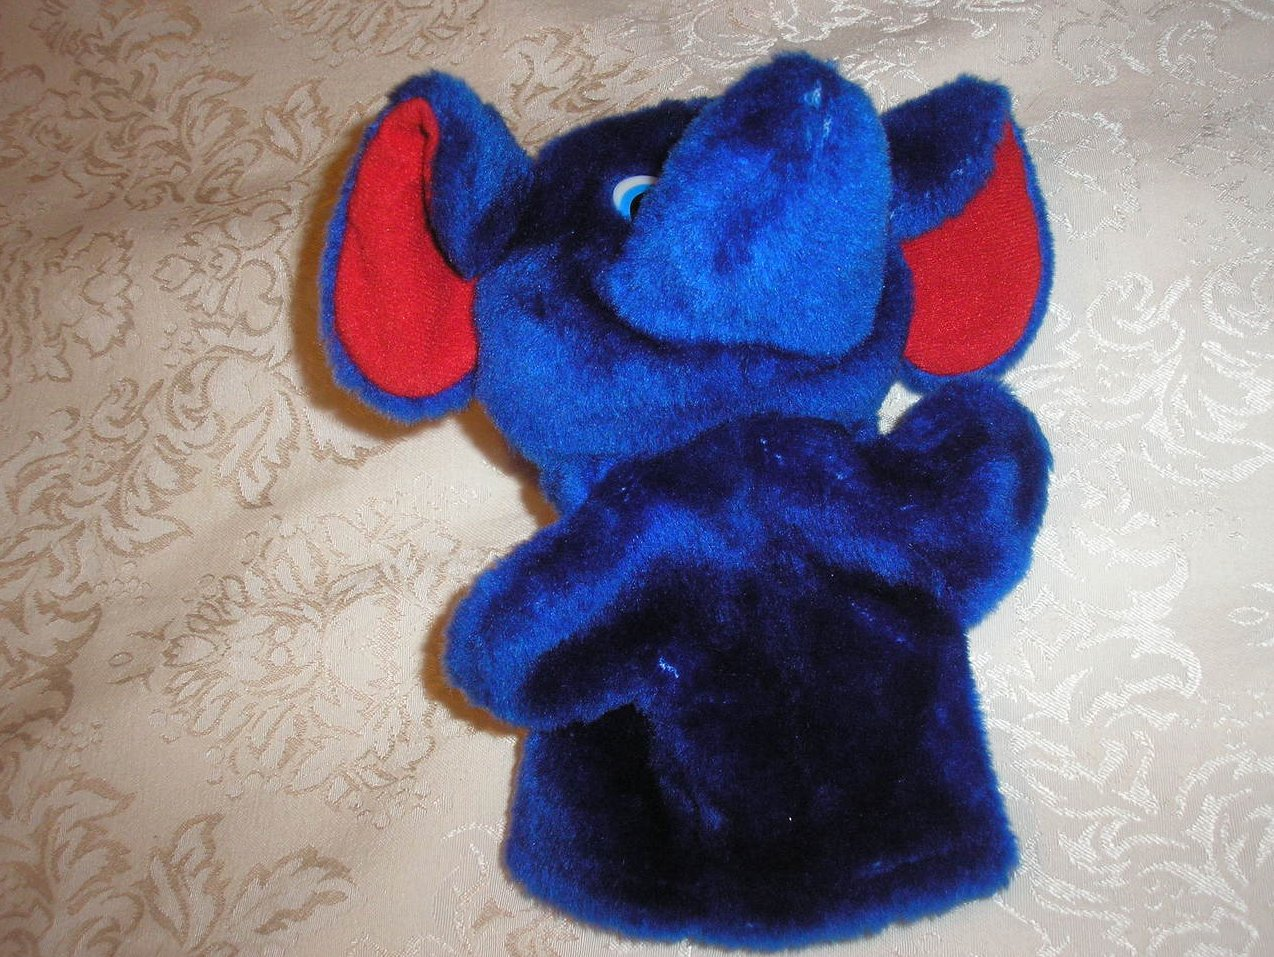 Plush Blue Elephant Hand Puppet 9 inches very gently used